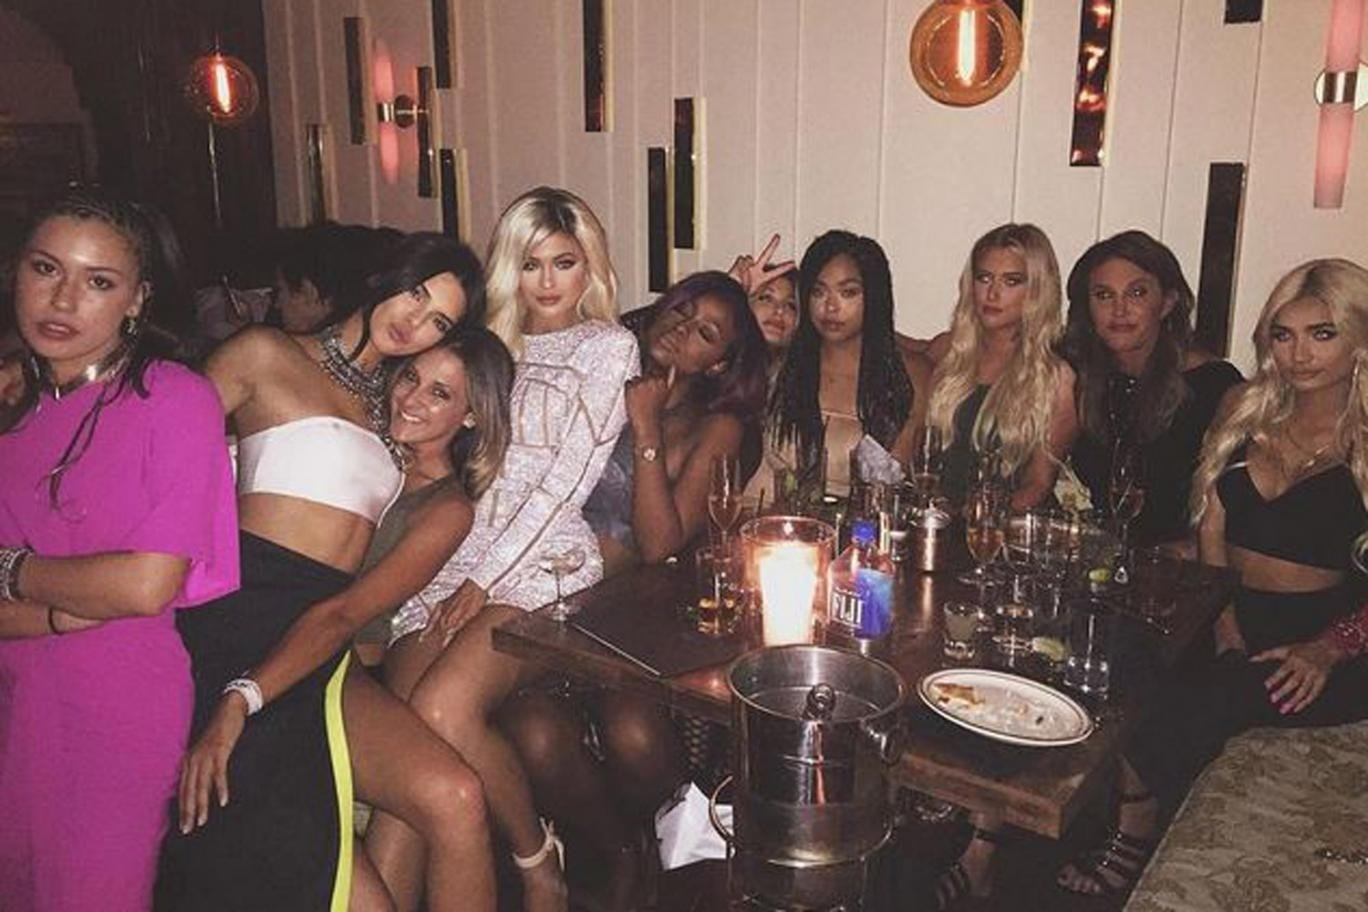 kylie jenner's crazy 18th birthday celebrations - zingfy